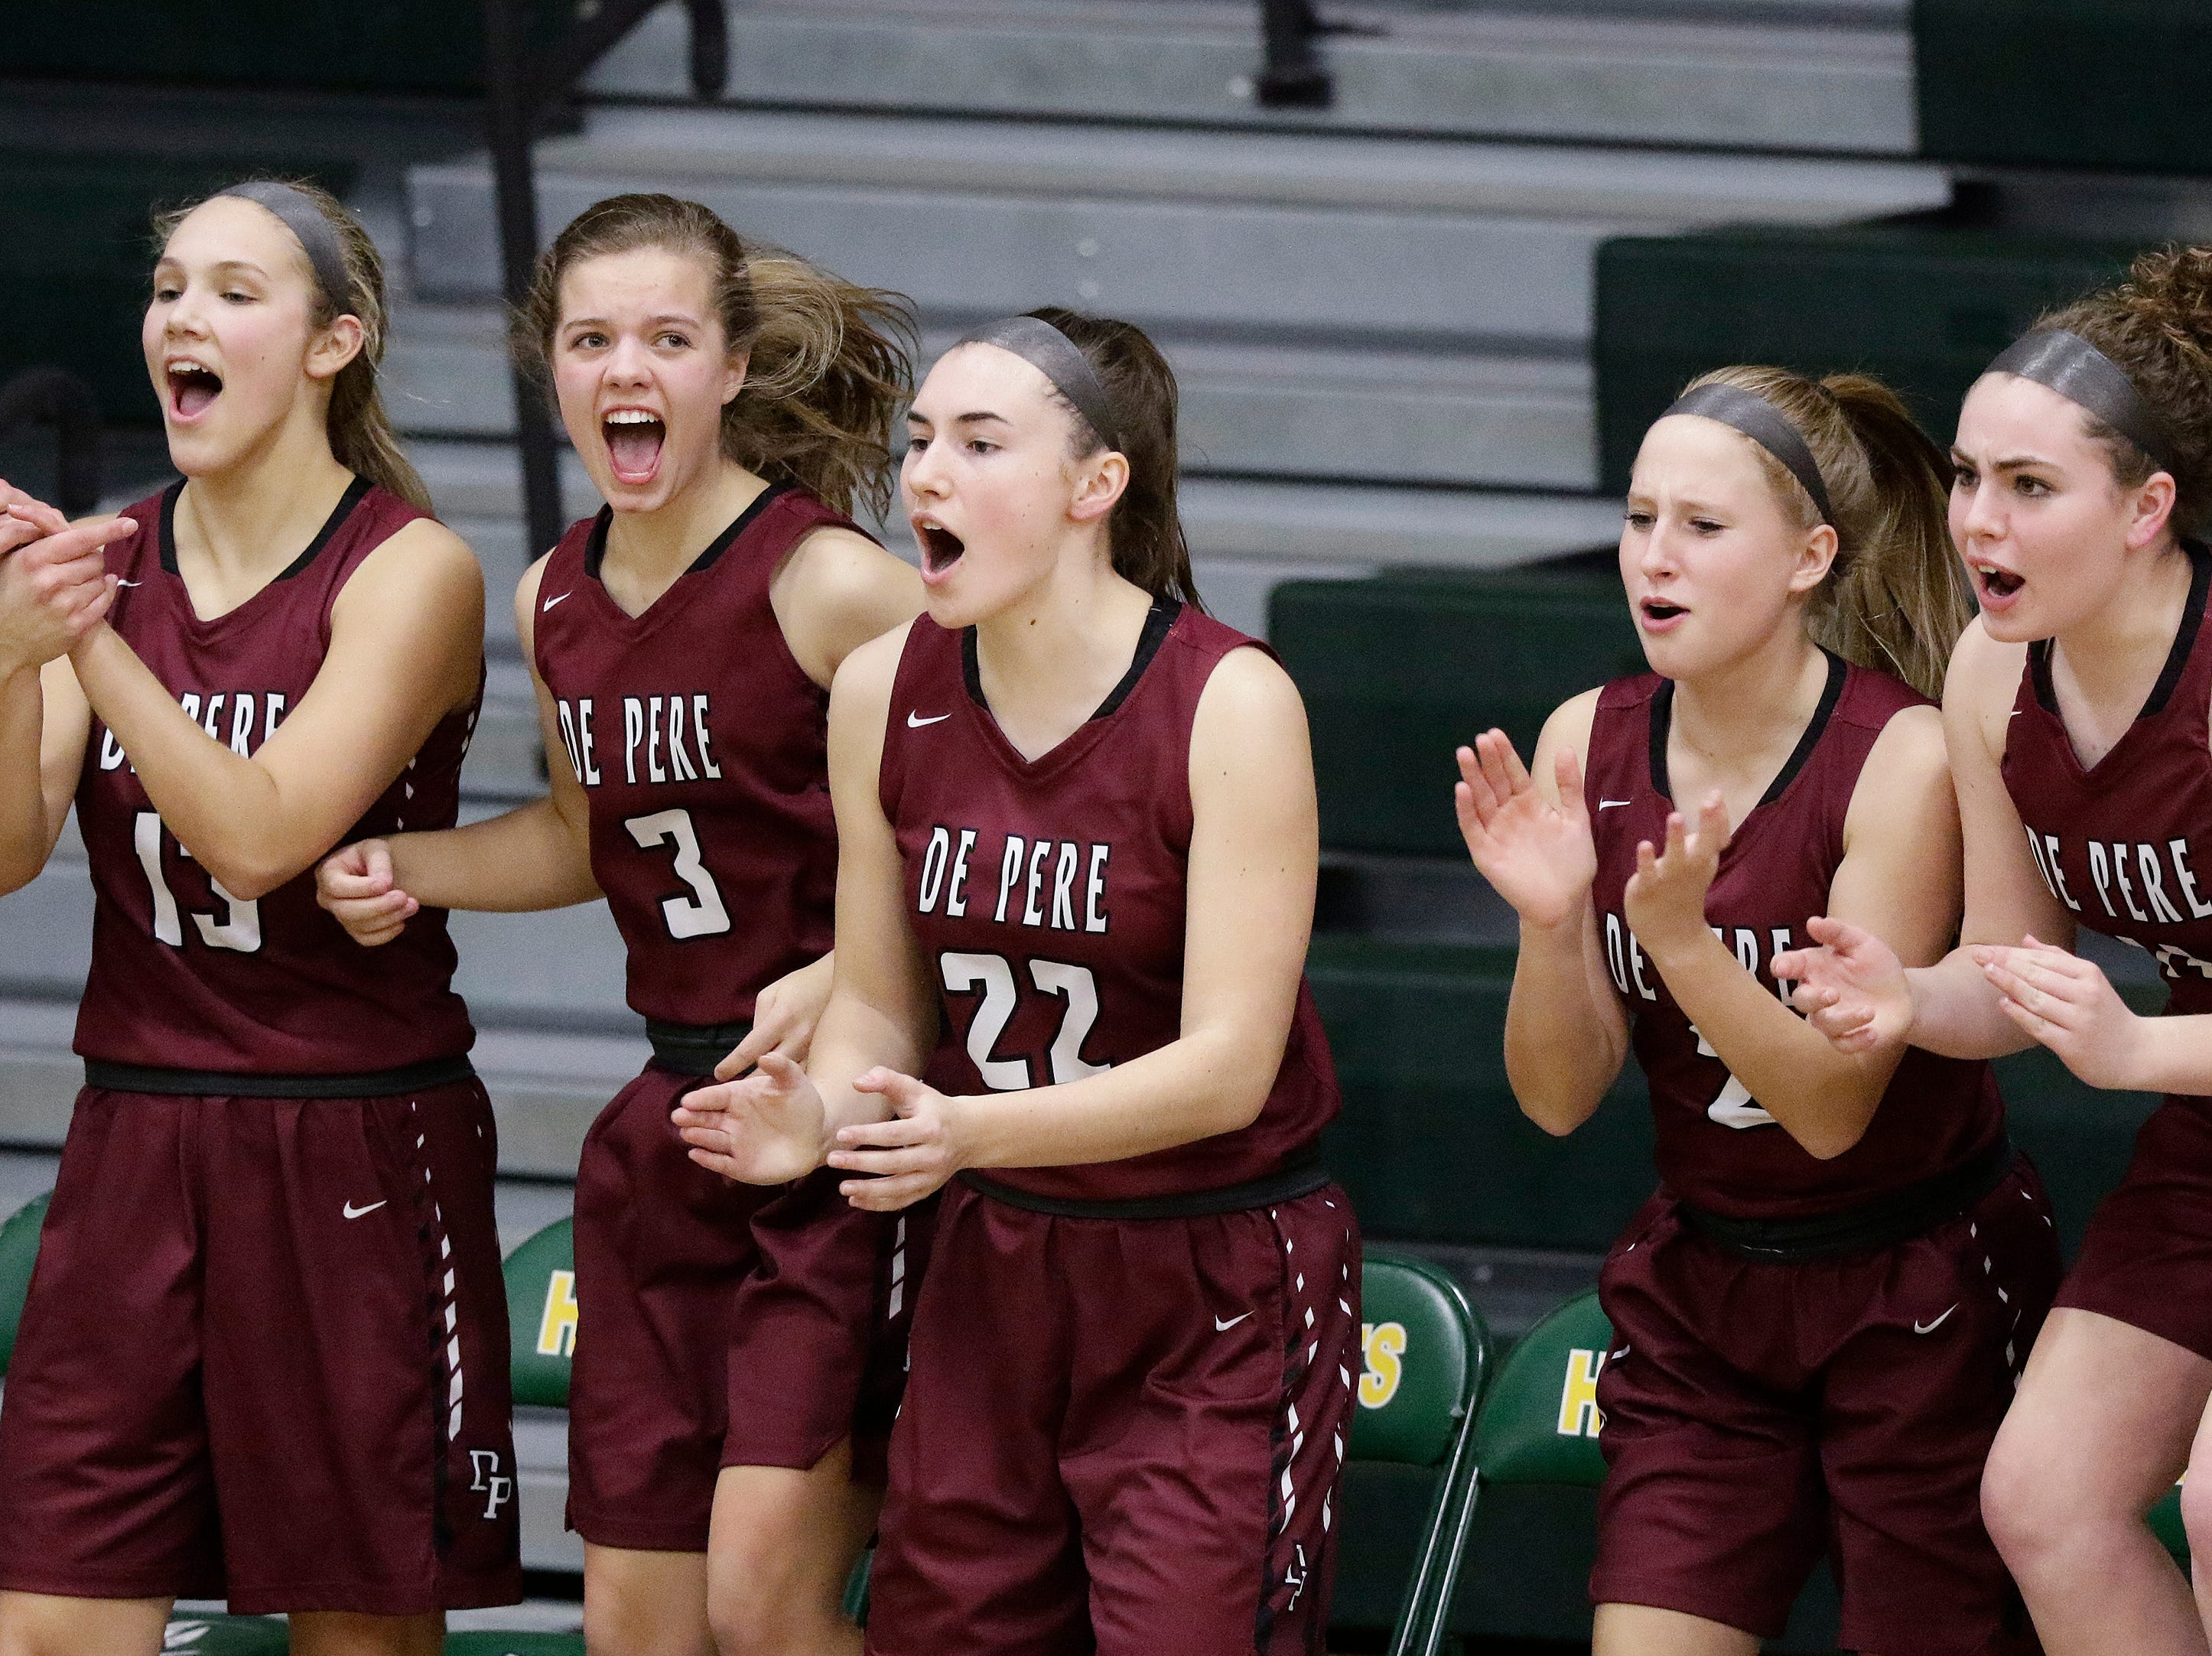 De Pere players cheer from the bench during a girls basketball game against Green Bay Preble at Preble high school on Tuesday, January 8, 2019 in Green Bay, Wis.